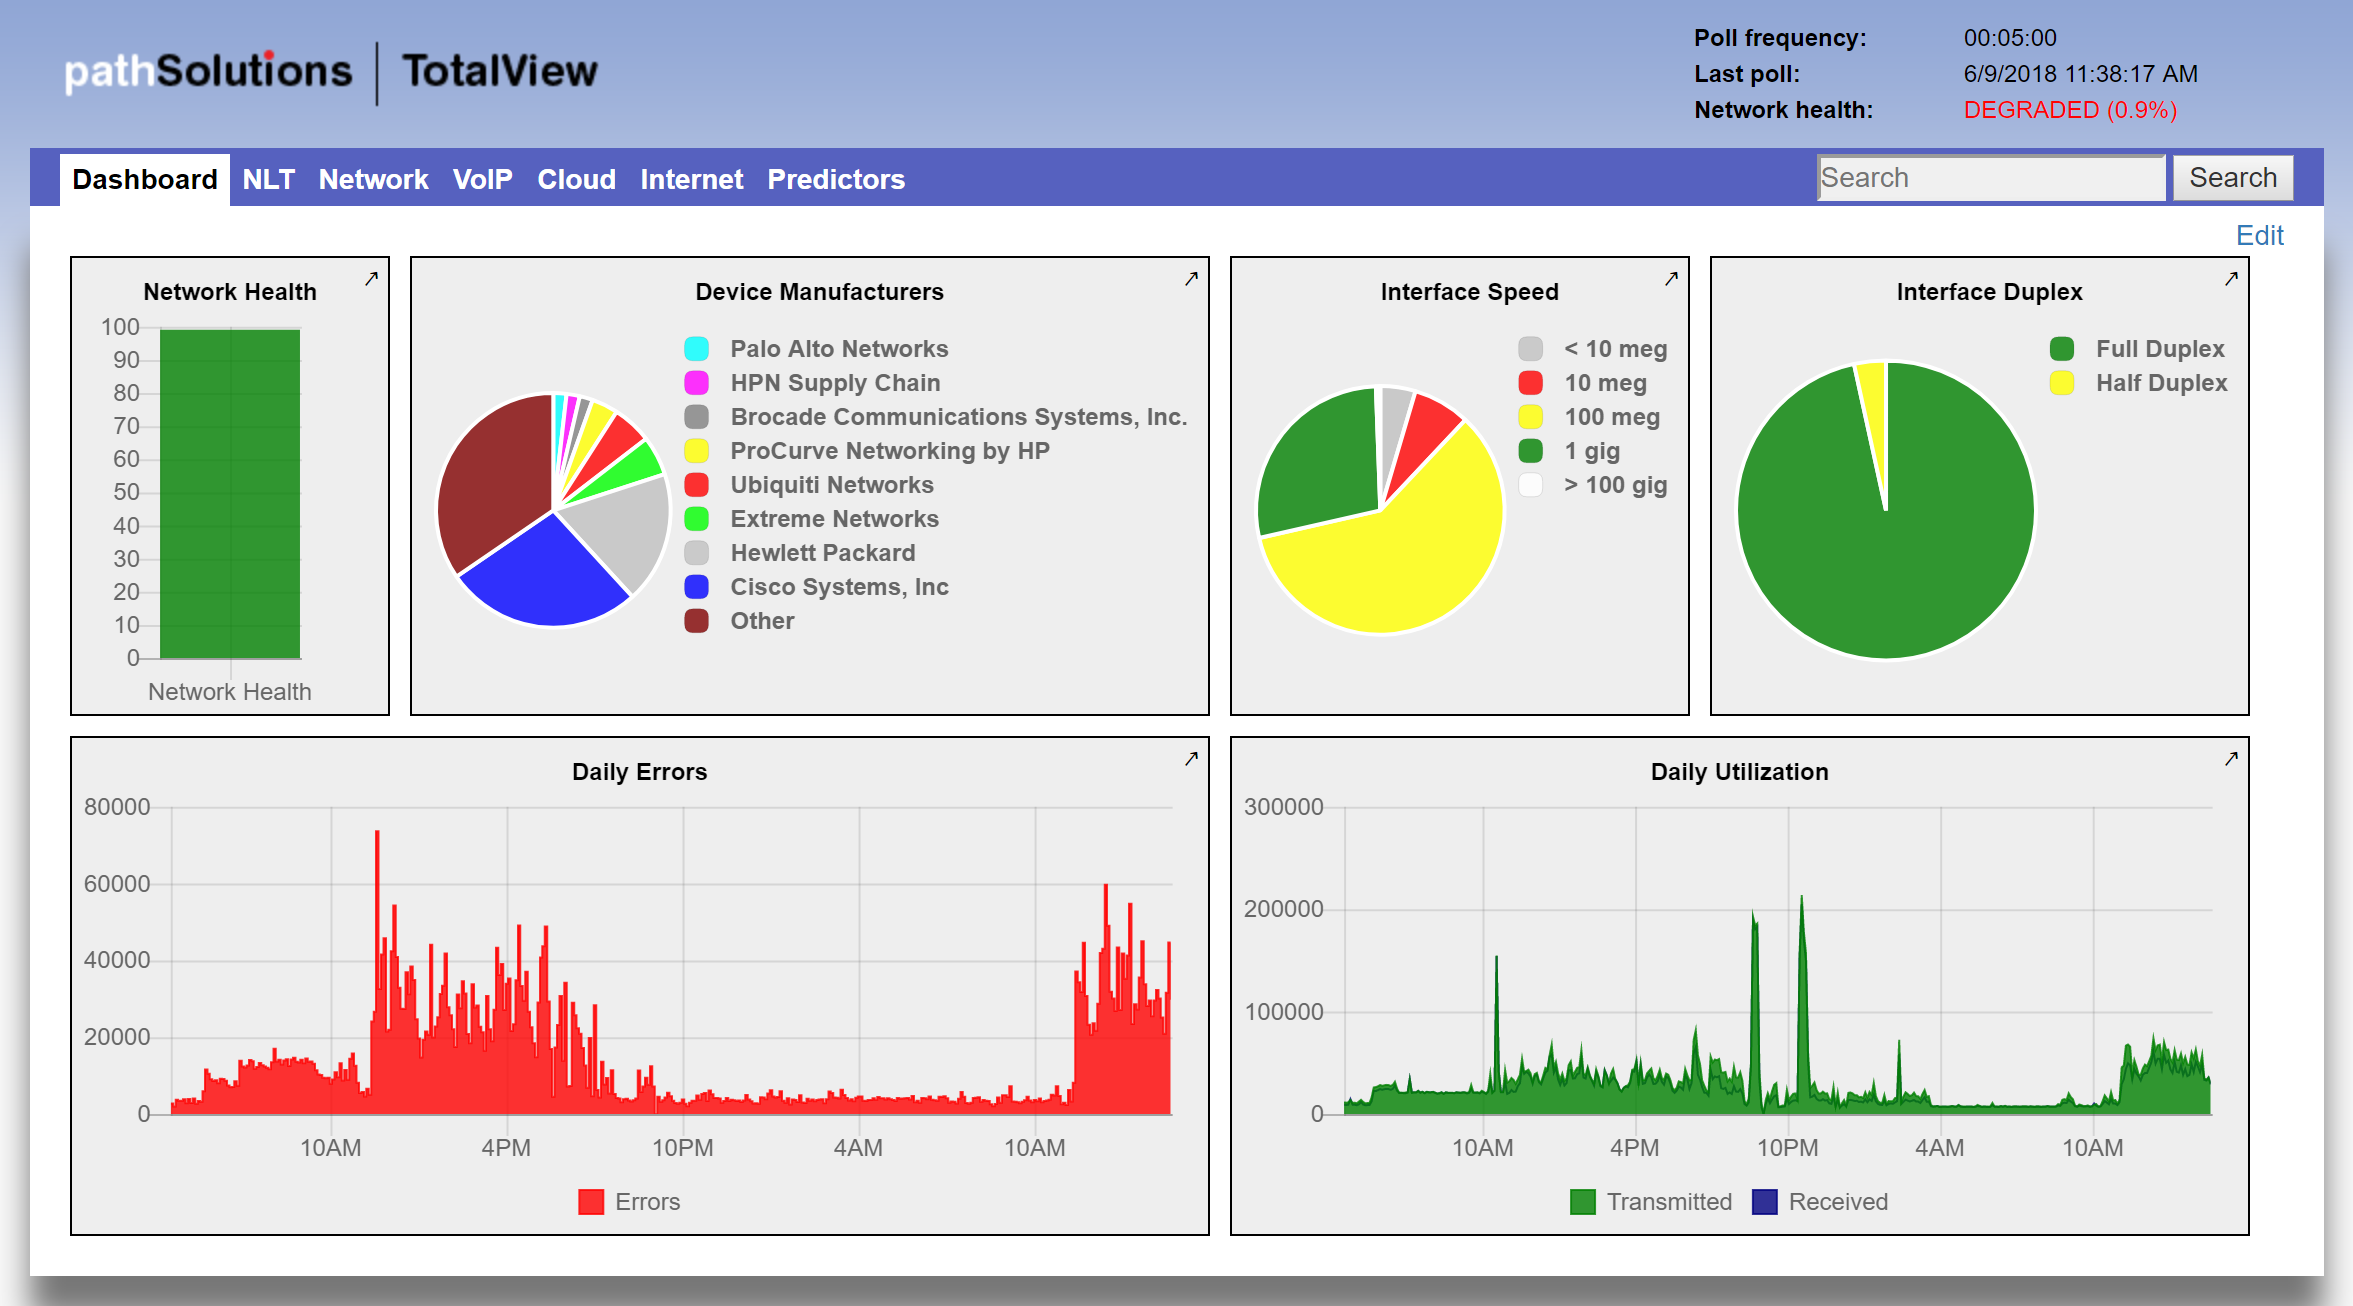 PathSolutions releases TotalView version 9